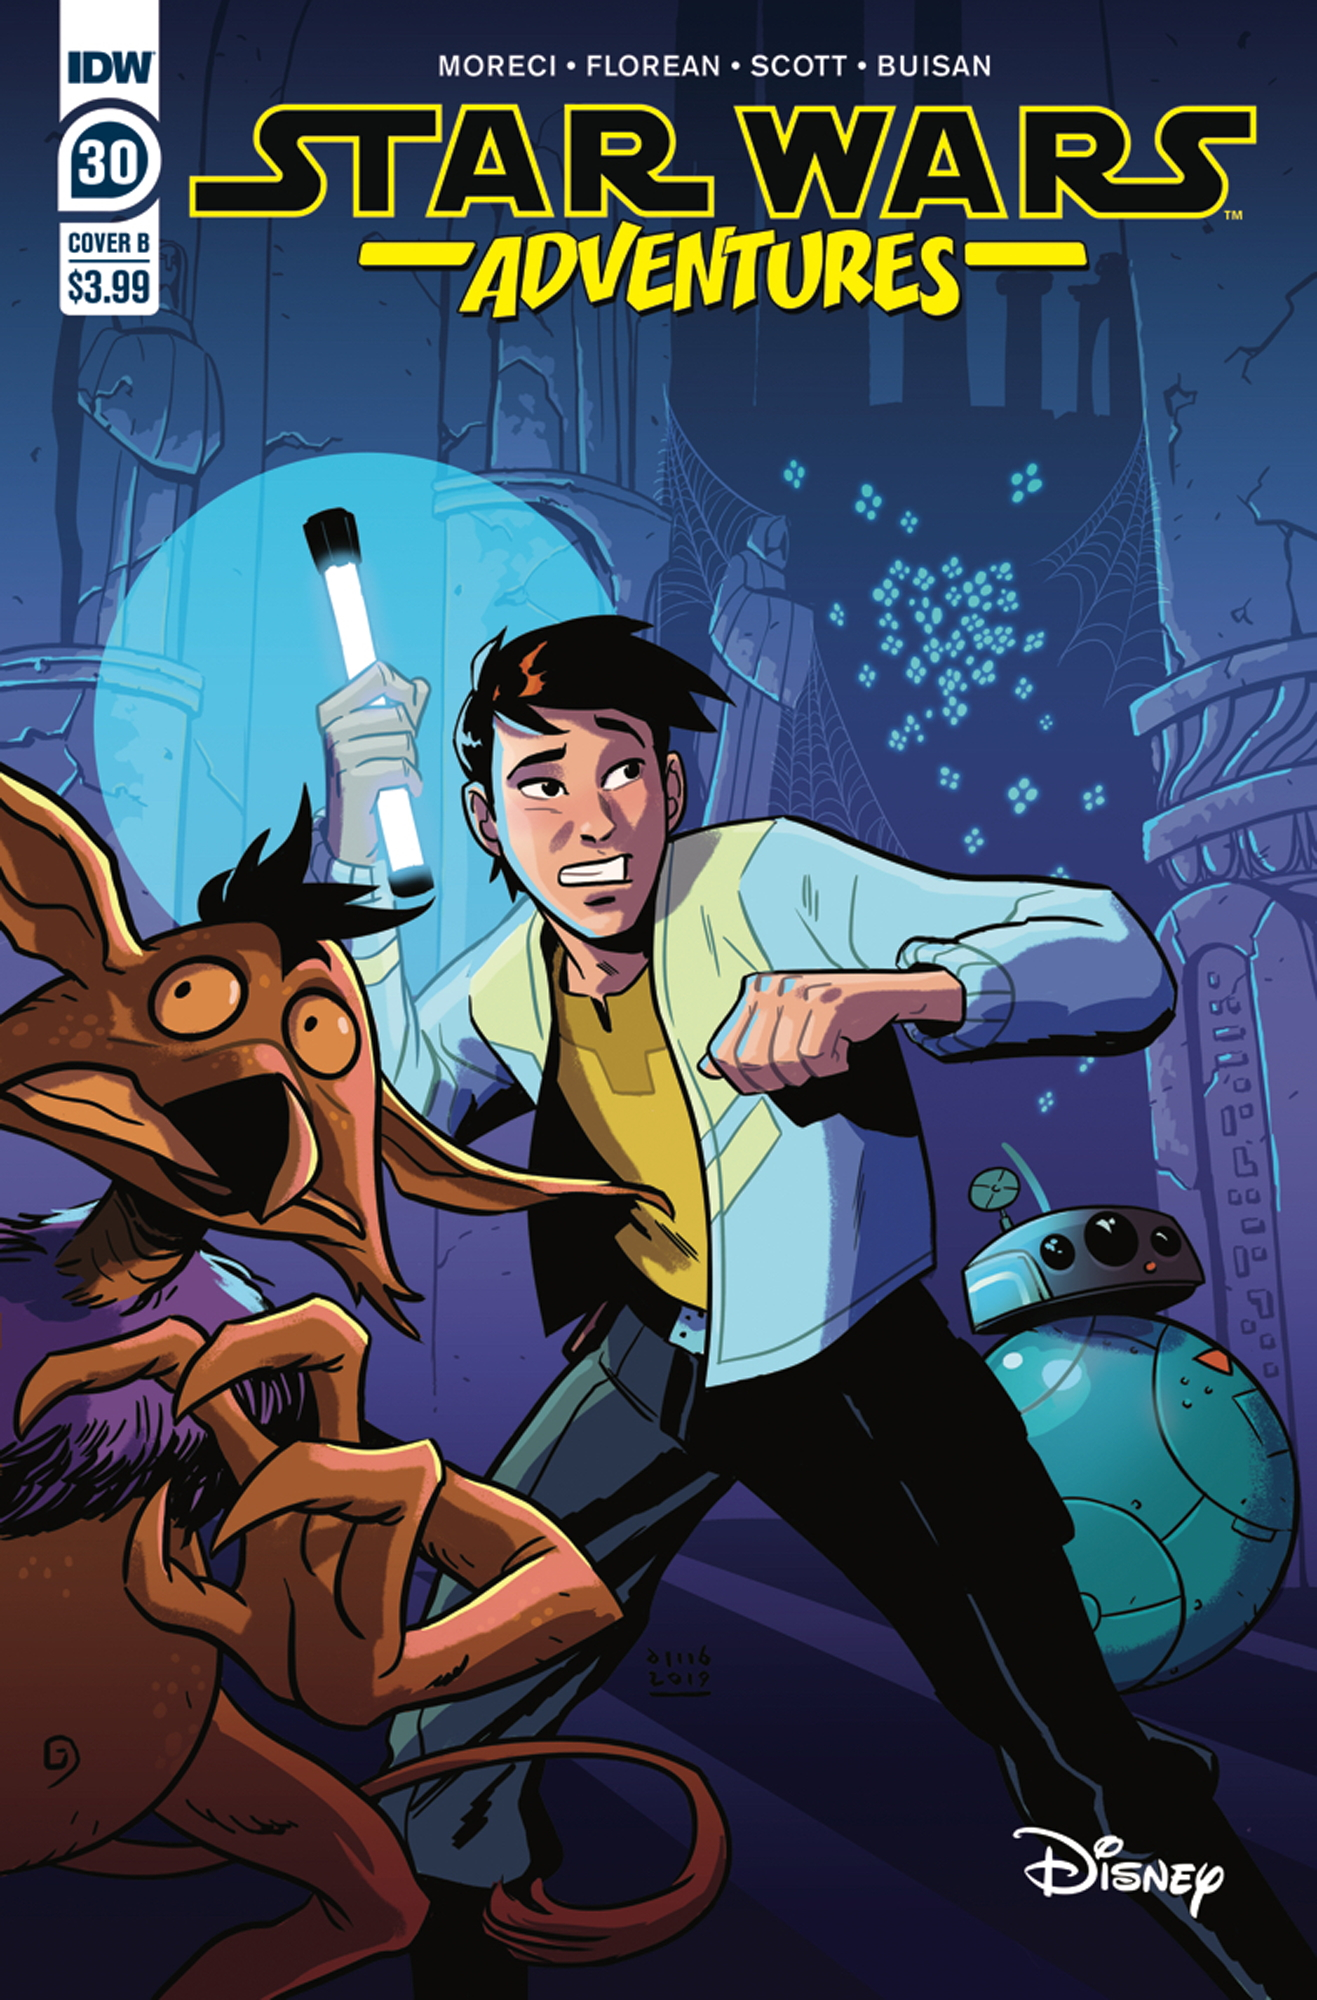 Star Wars Adventures #30 (Cover B by David M. Buisán) (15.01.2020)